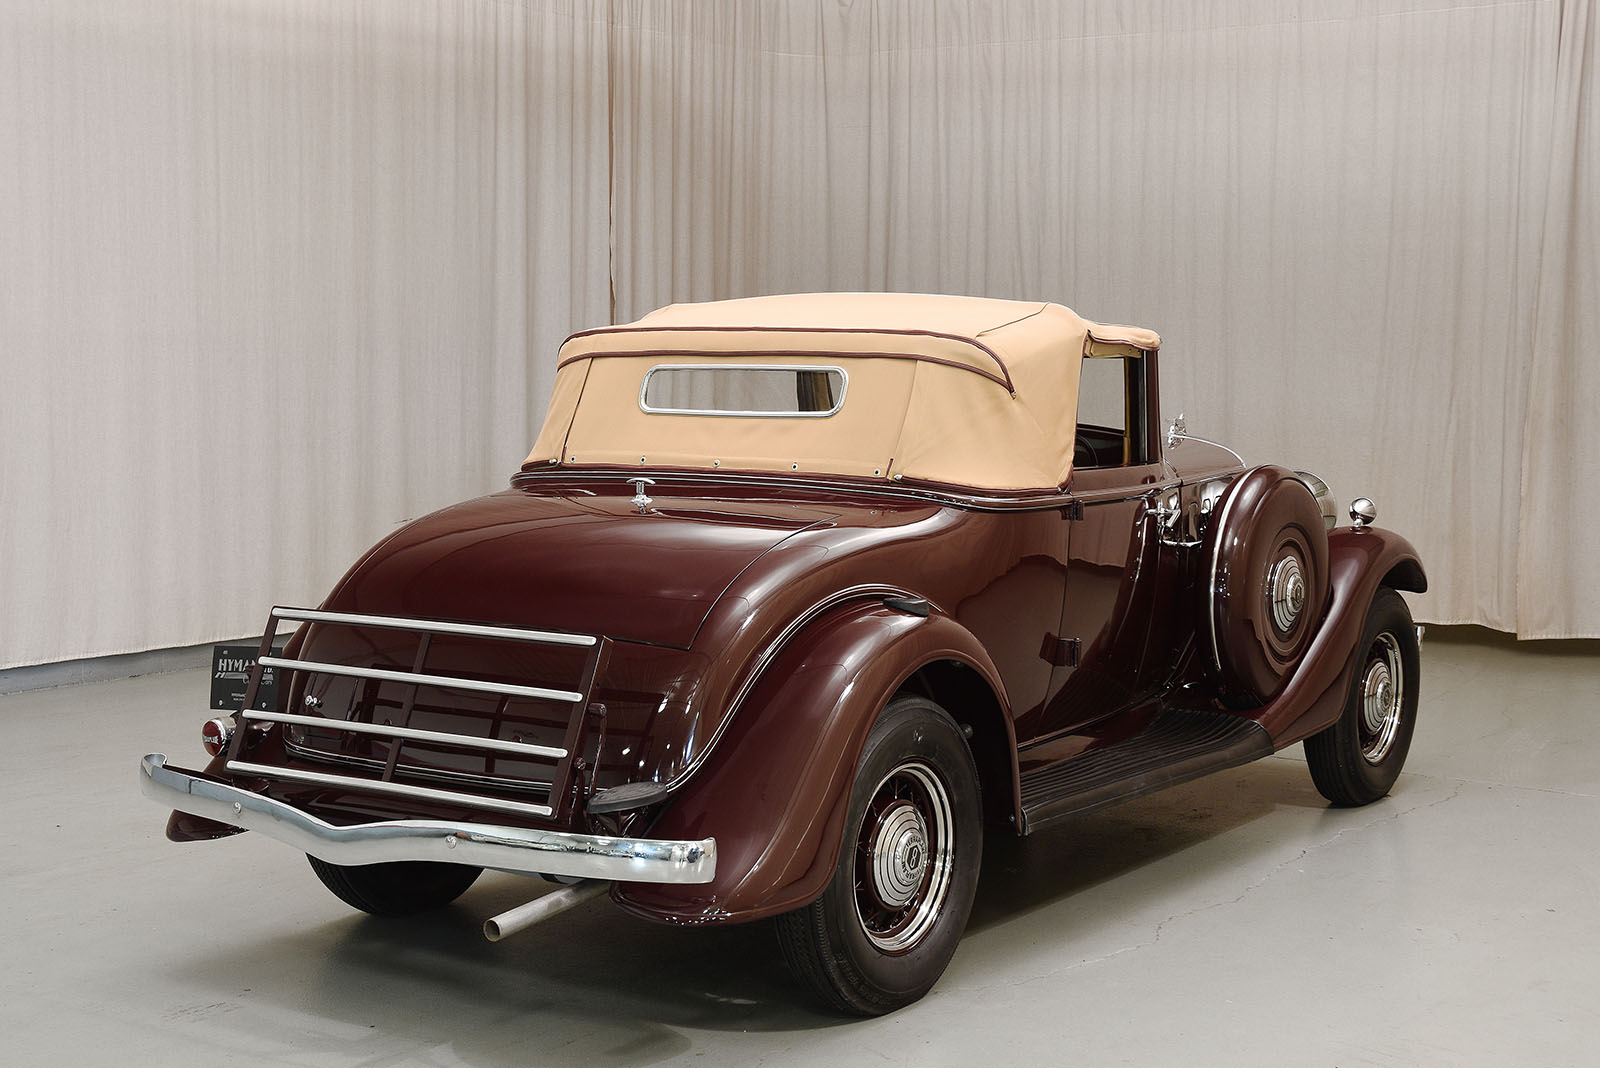 Affordable Luxury Cars >> 1933 Essex Terraplane 8 Rumble Seat Roadster | Hyman Ltd.